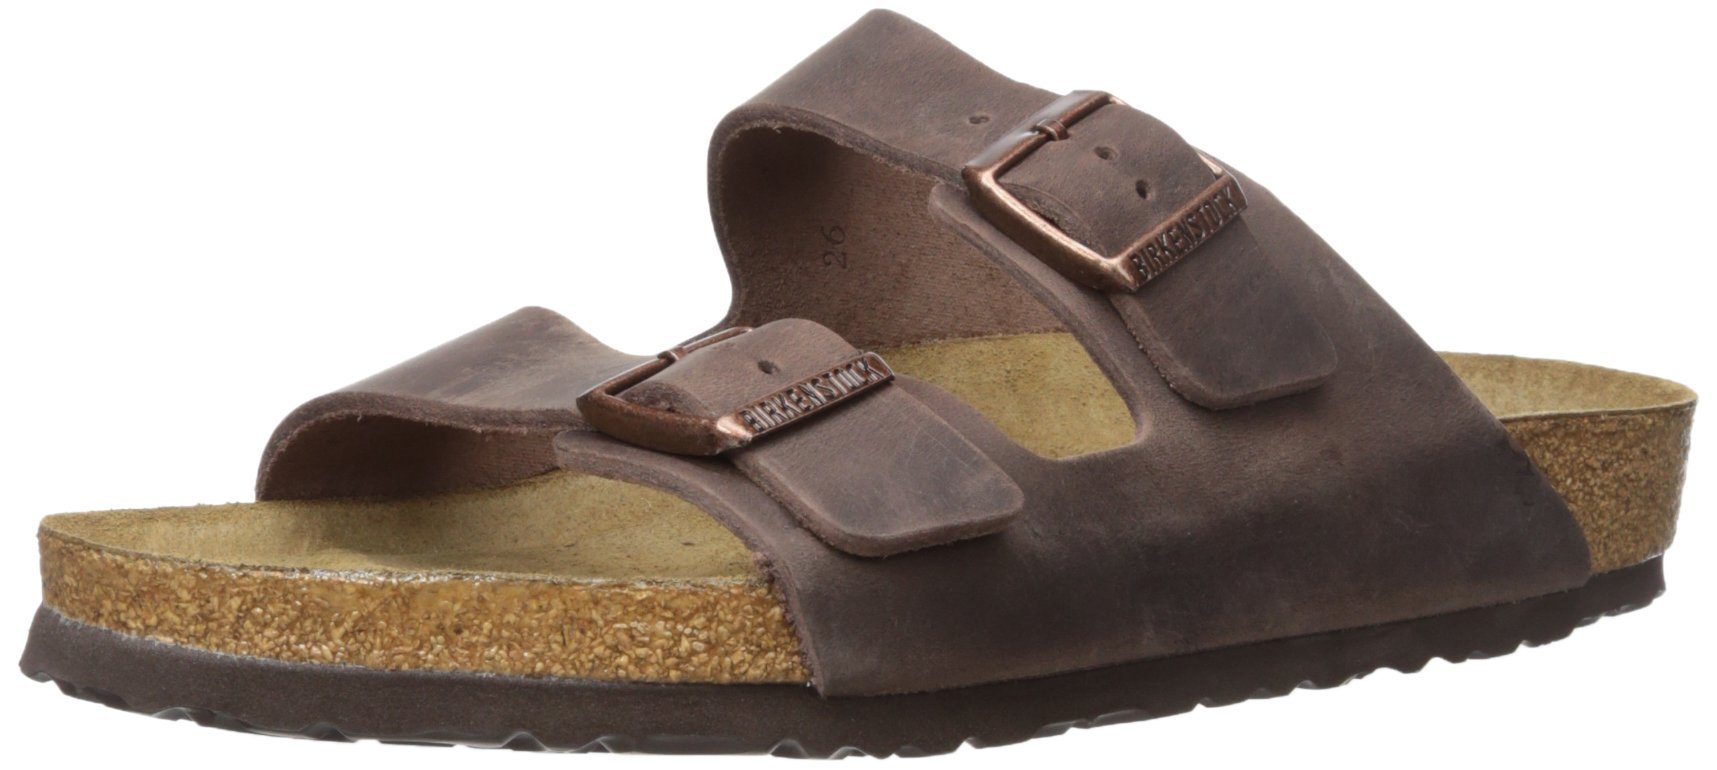 Birkenstock Arizona Sandal Habana Oiled Leather 42